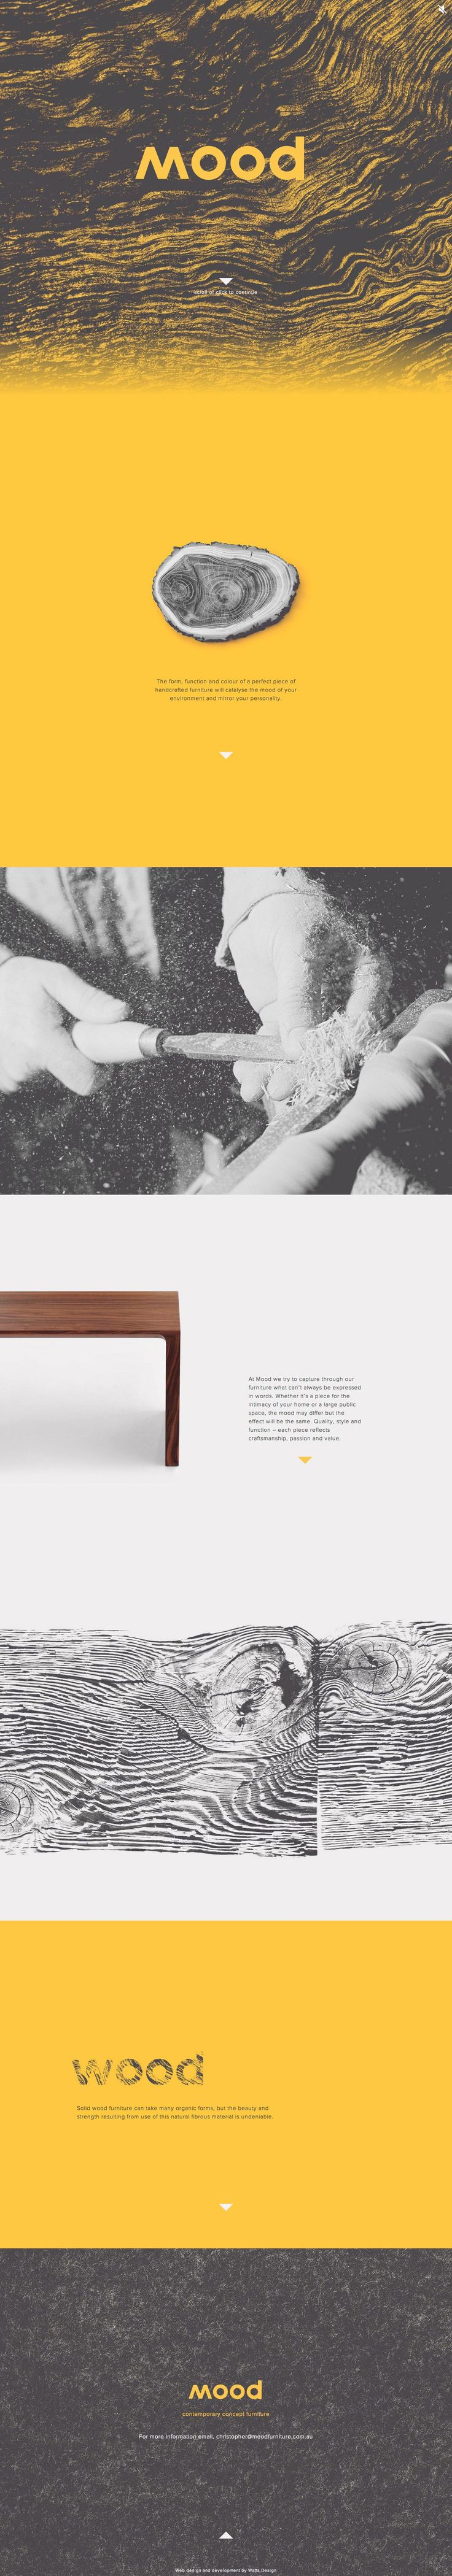 Mood. Made by wood. (More design inspiration at www.aldenchong.com) #webdesign